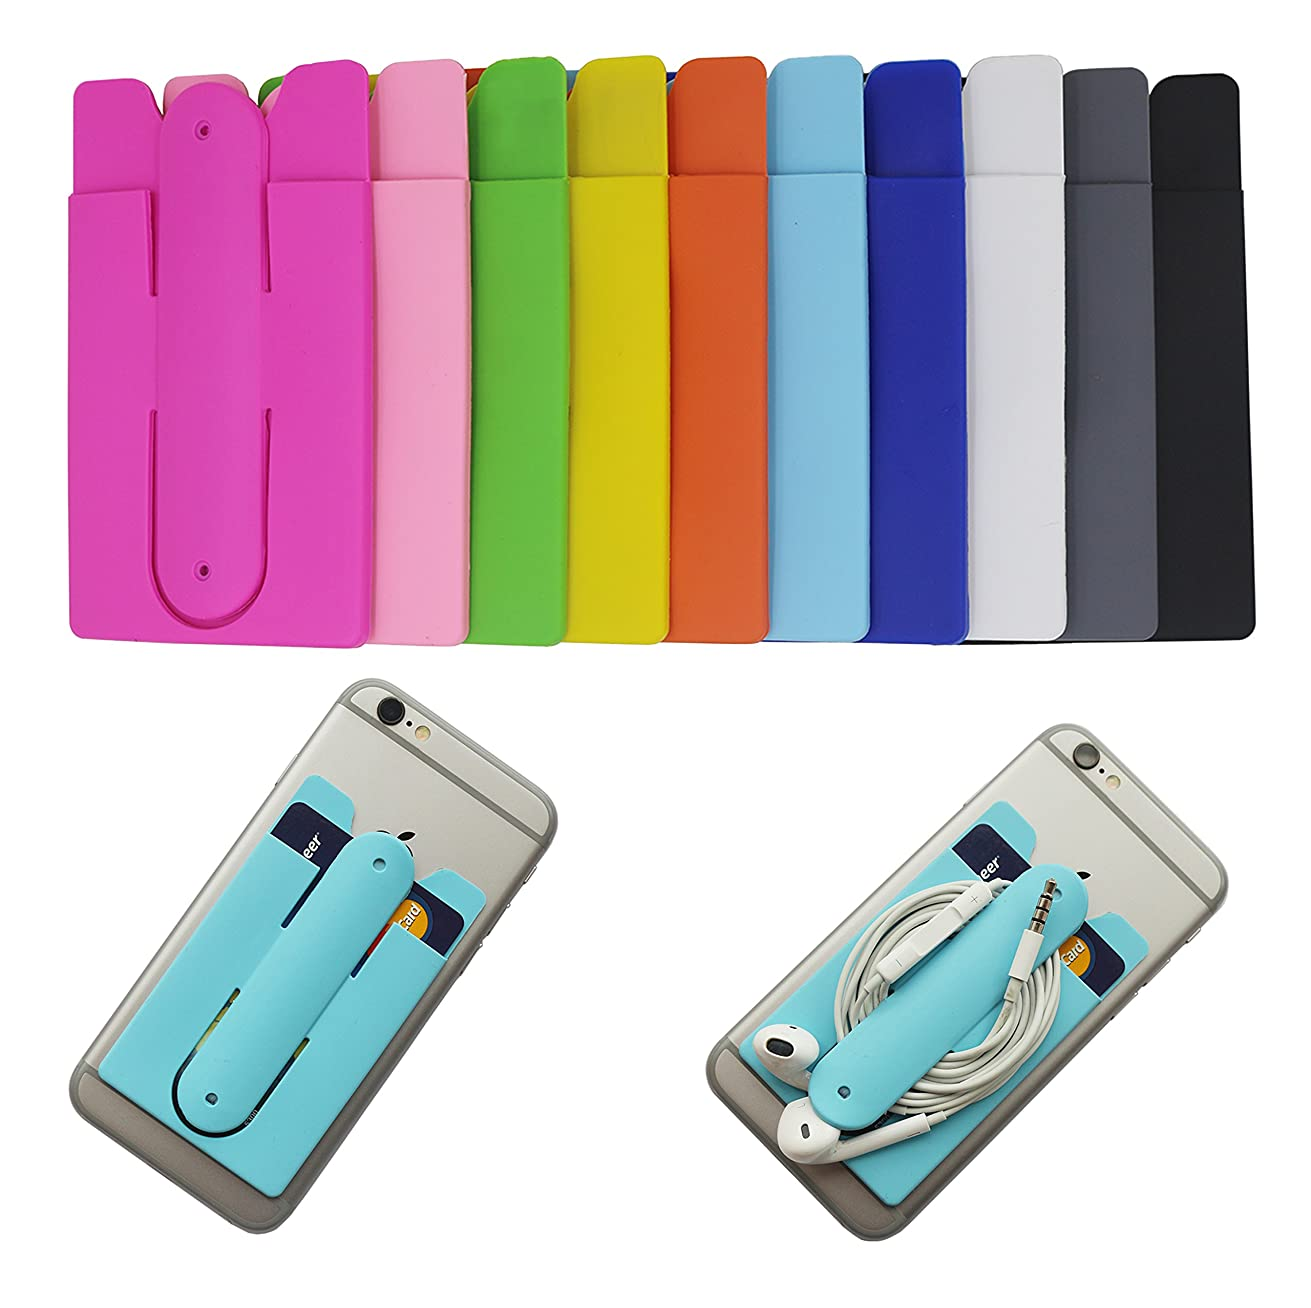 Phone Card Holder, Morntek 2 in 1 Silicone Adhesive Stick on ID Credit Card Holder with Phone Stand, Fits for iPhone, Samsung and Most Other Phones, 10 Mixed Color Pack (10 Pack)